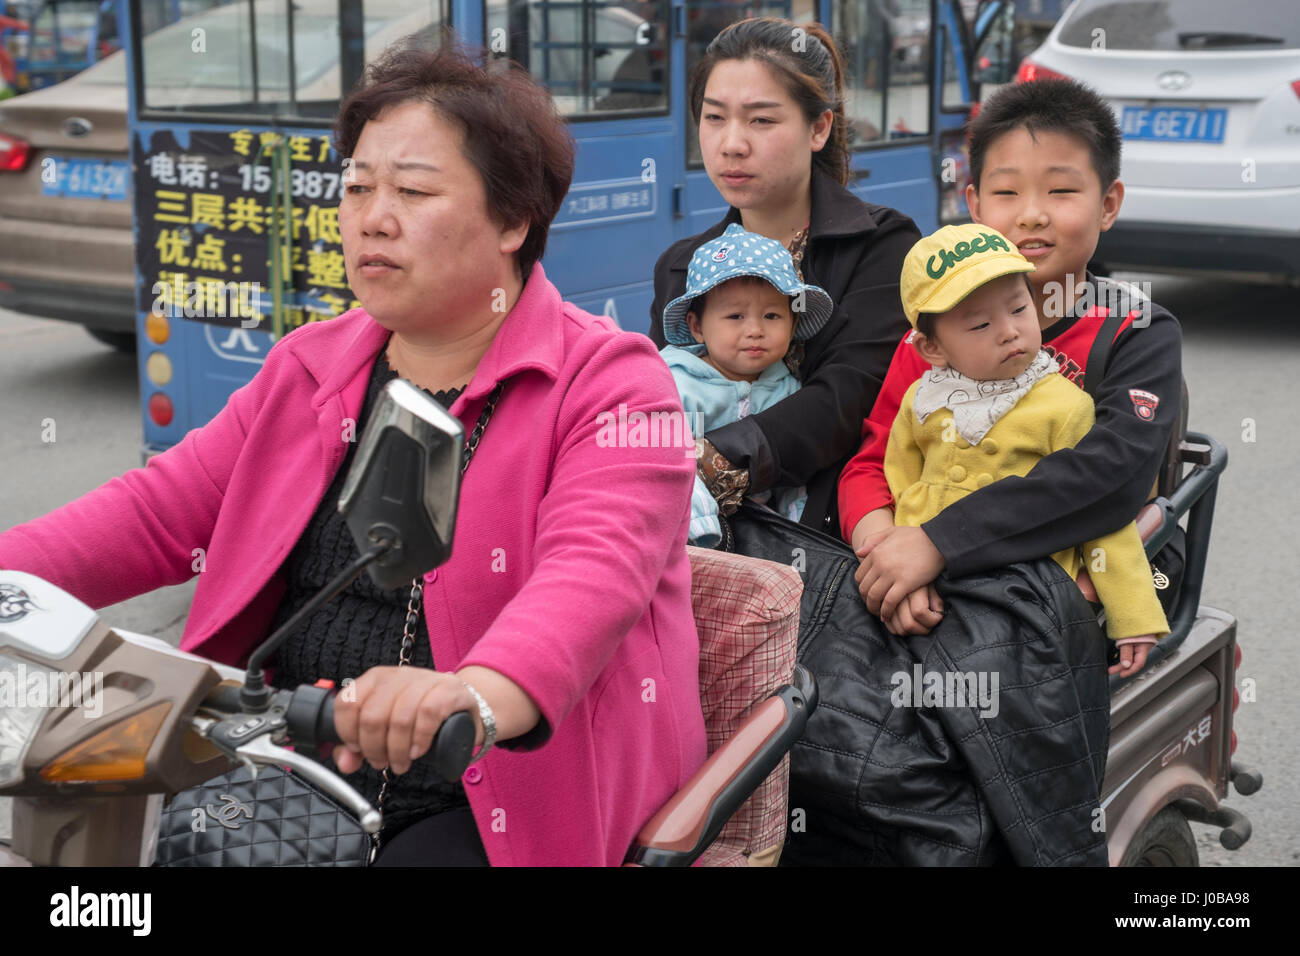 A family in Xiong County, Hebei province, China. 09-Apr-2017 - Stock Image